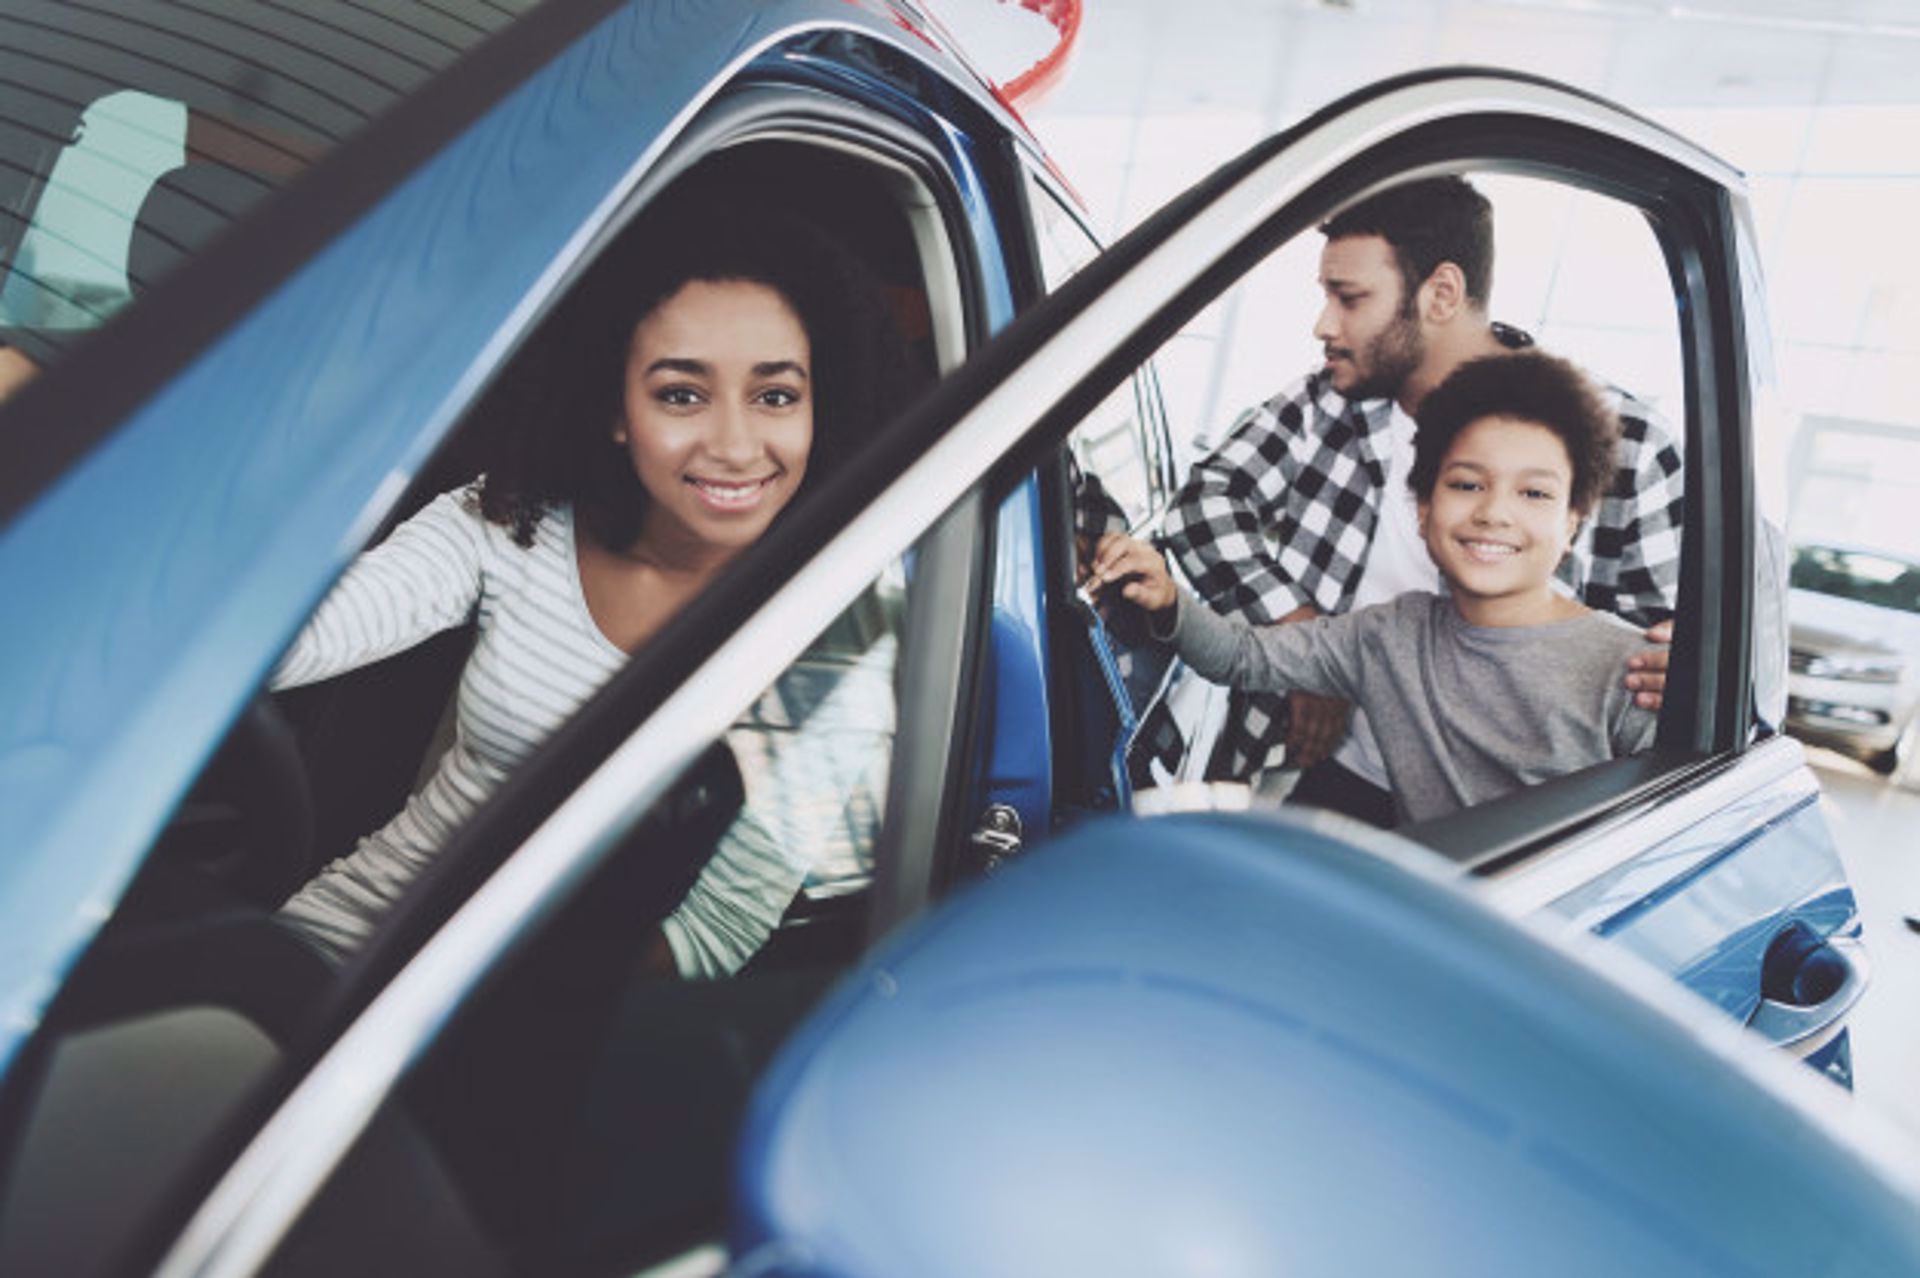 5 Things To Look For in a Family Car